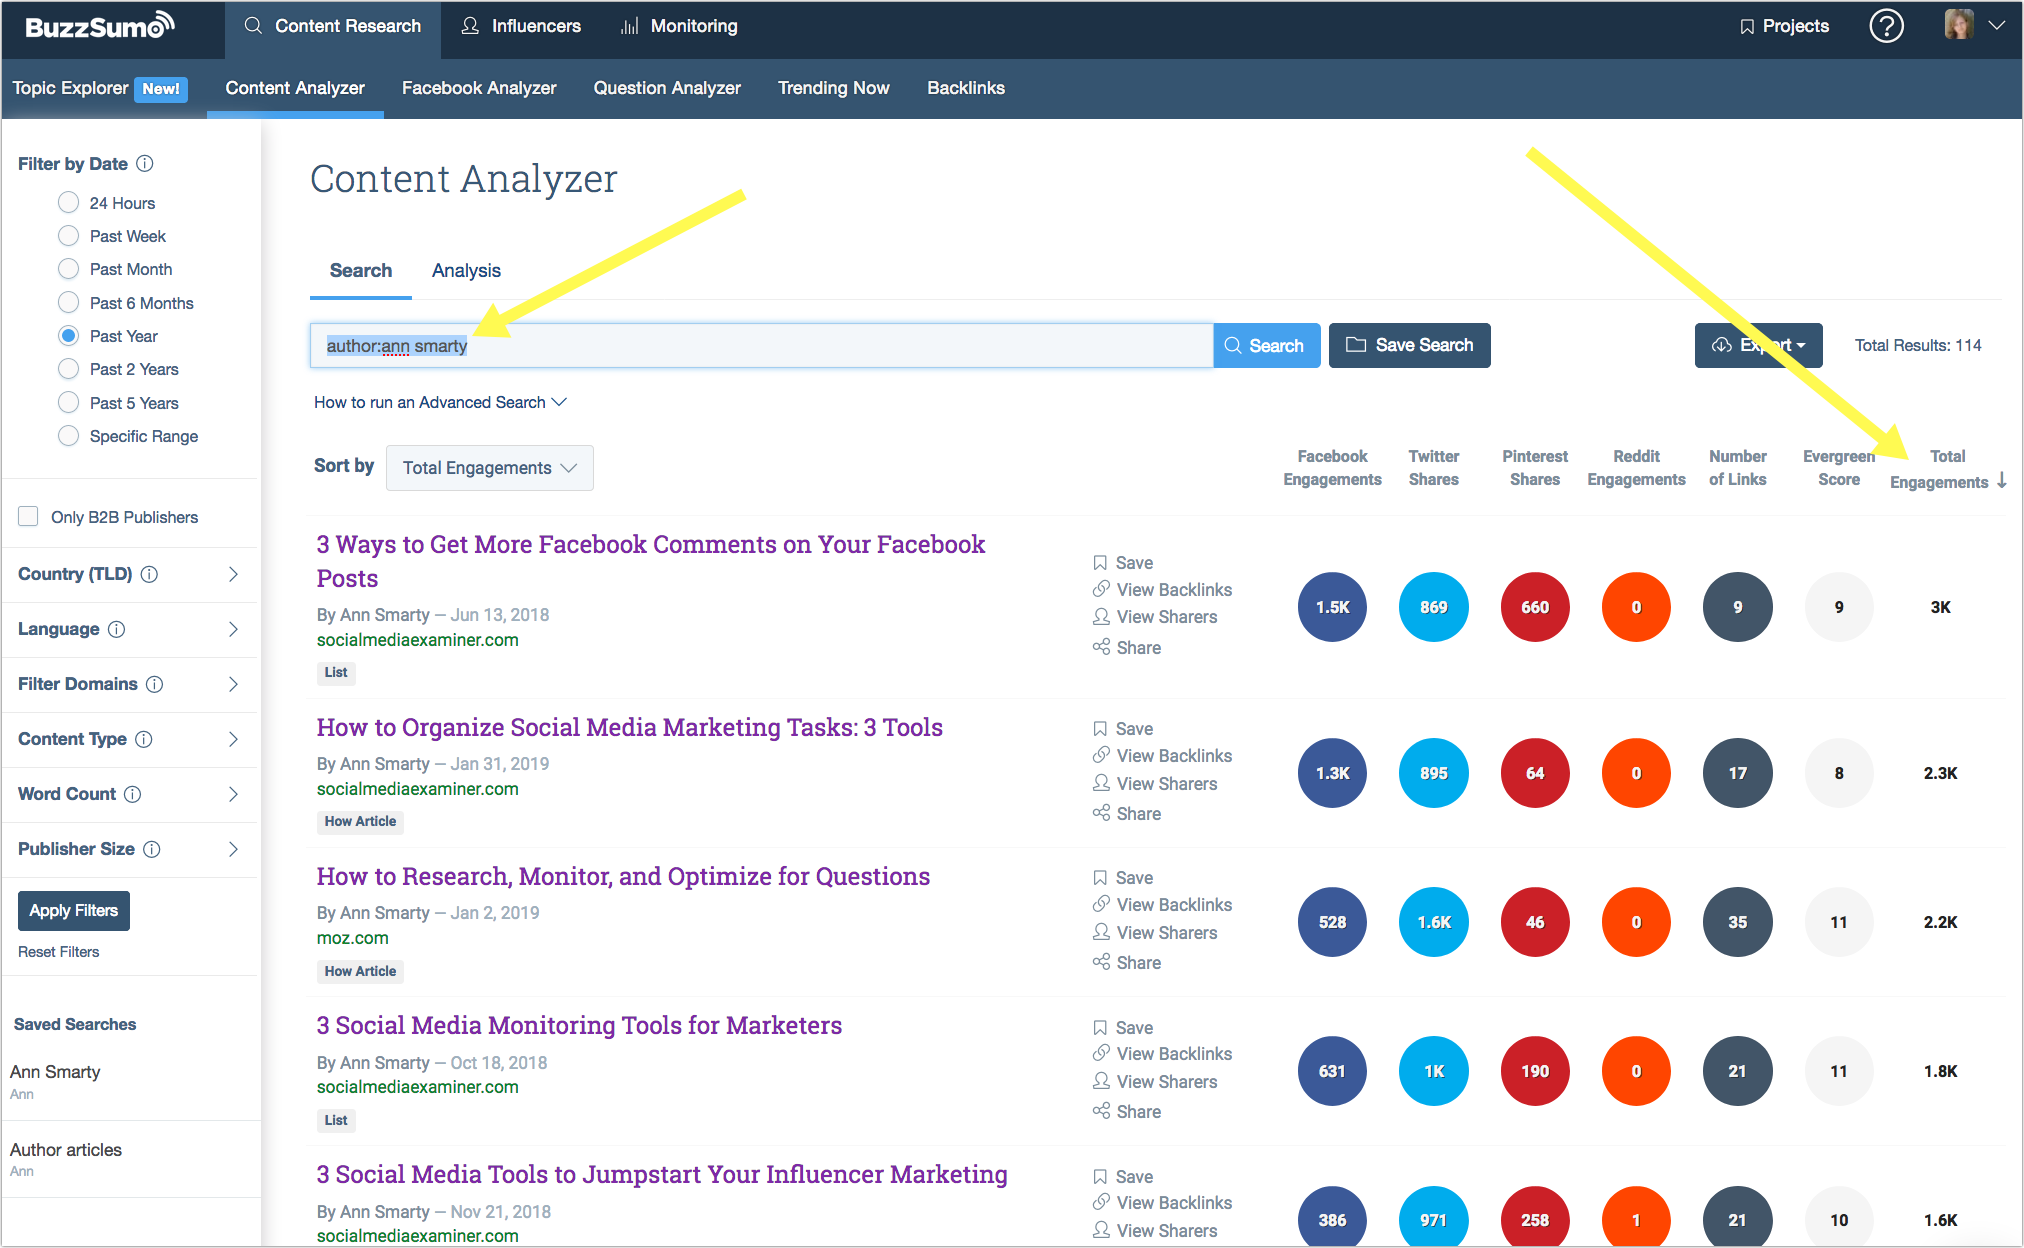 Buzzsumo authorship